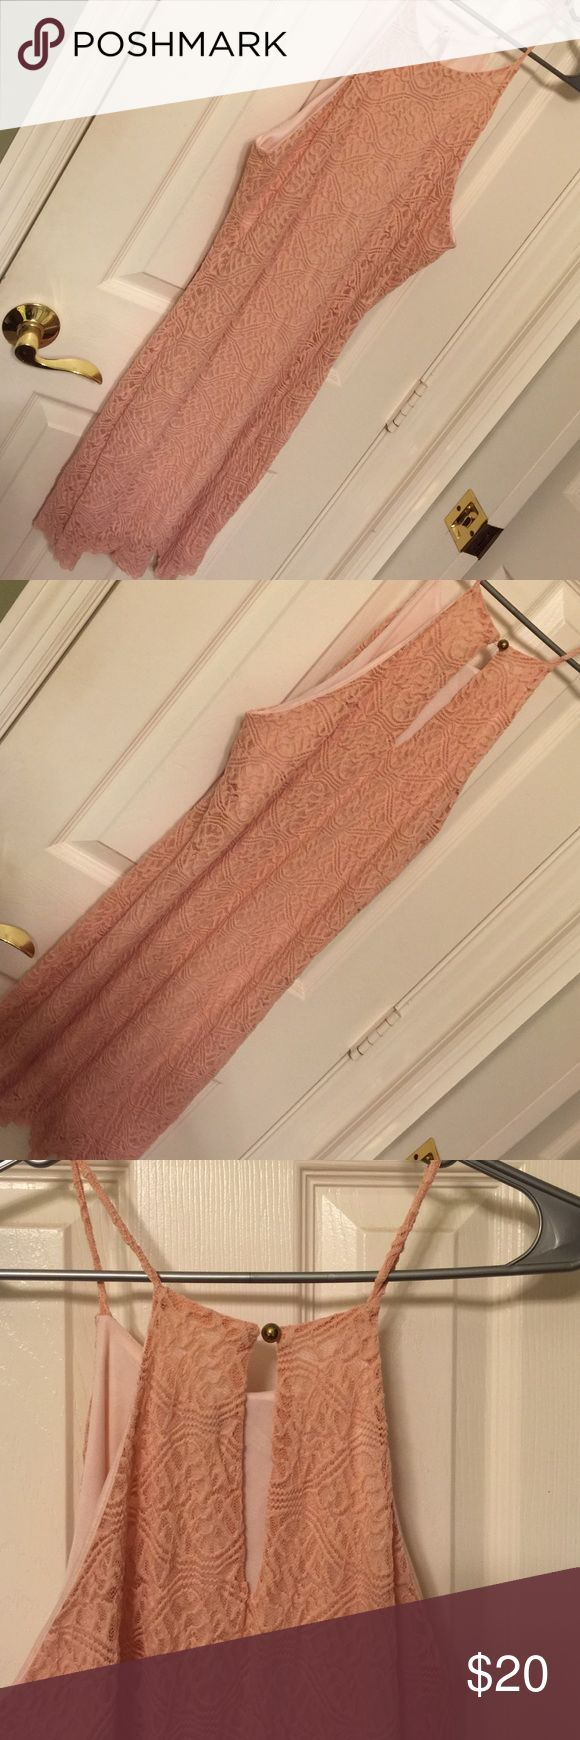 Peach lace dress. Very cute peach lacy dress. With back botton ! Worn once. Clean. Charlotte Russe Dresses